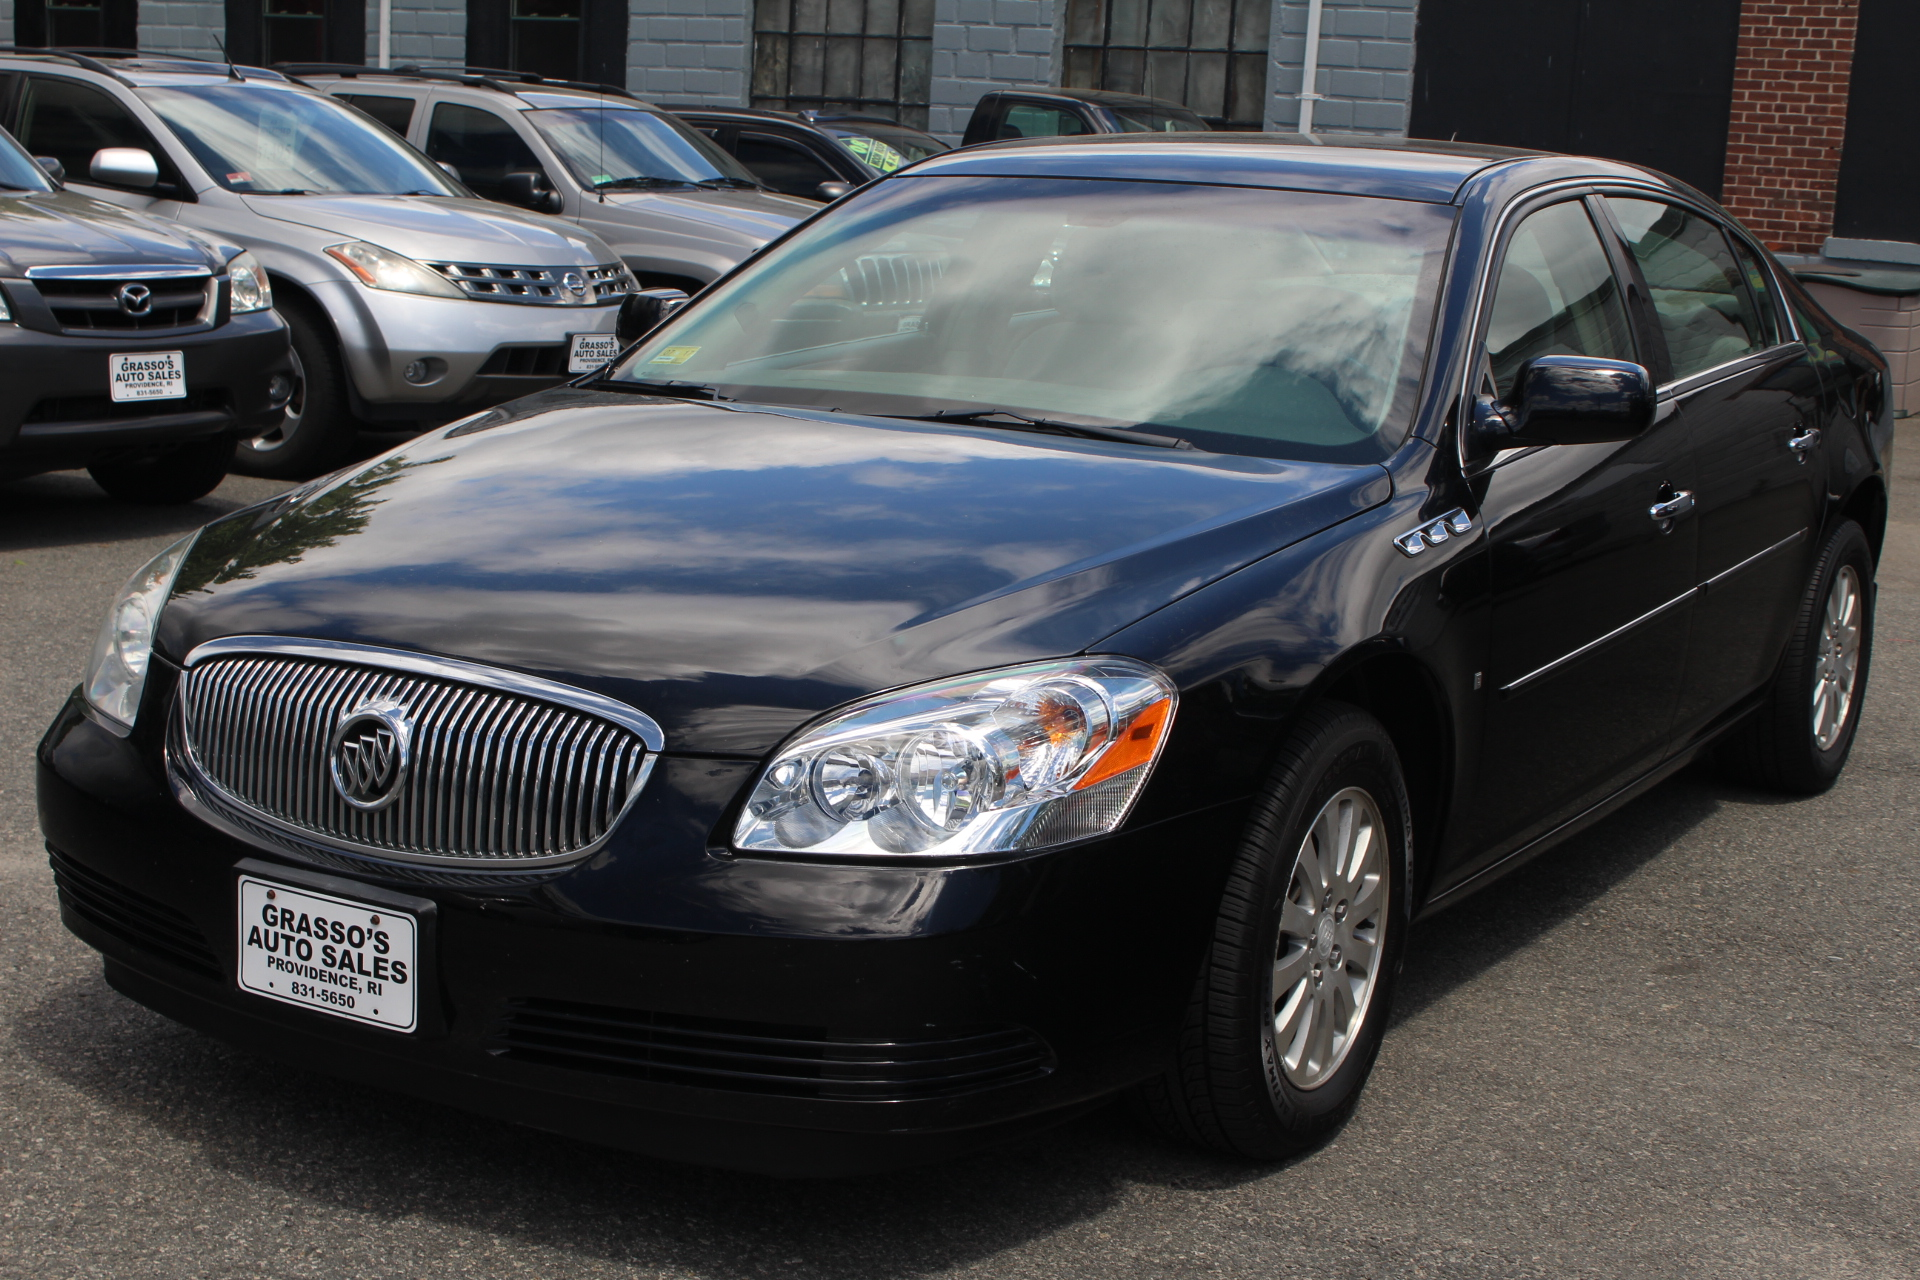 2006 Buick Lucerne 4dr Sdn CX TWO OWNERS  NON SMOKER  COMPLETELY SERVICED WITH A 2 YEAR RHODE IS